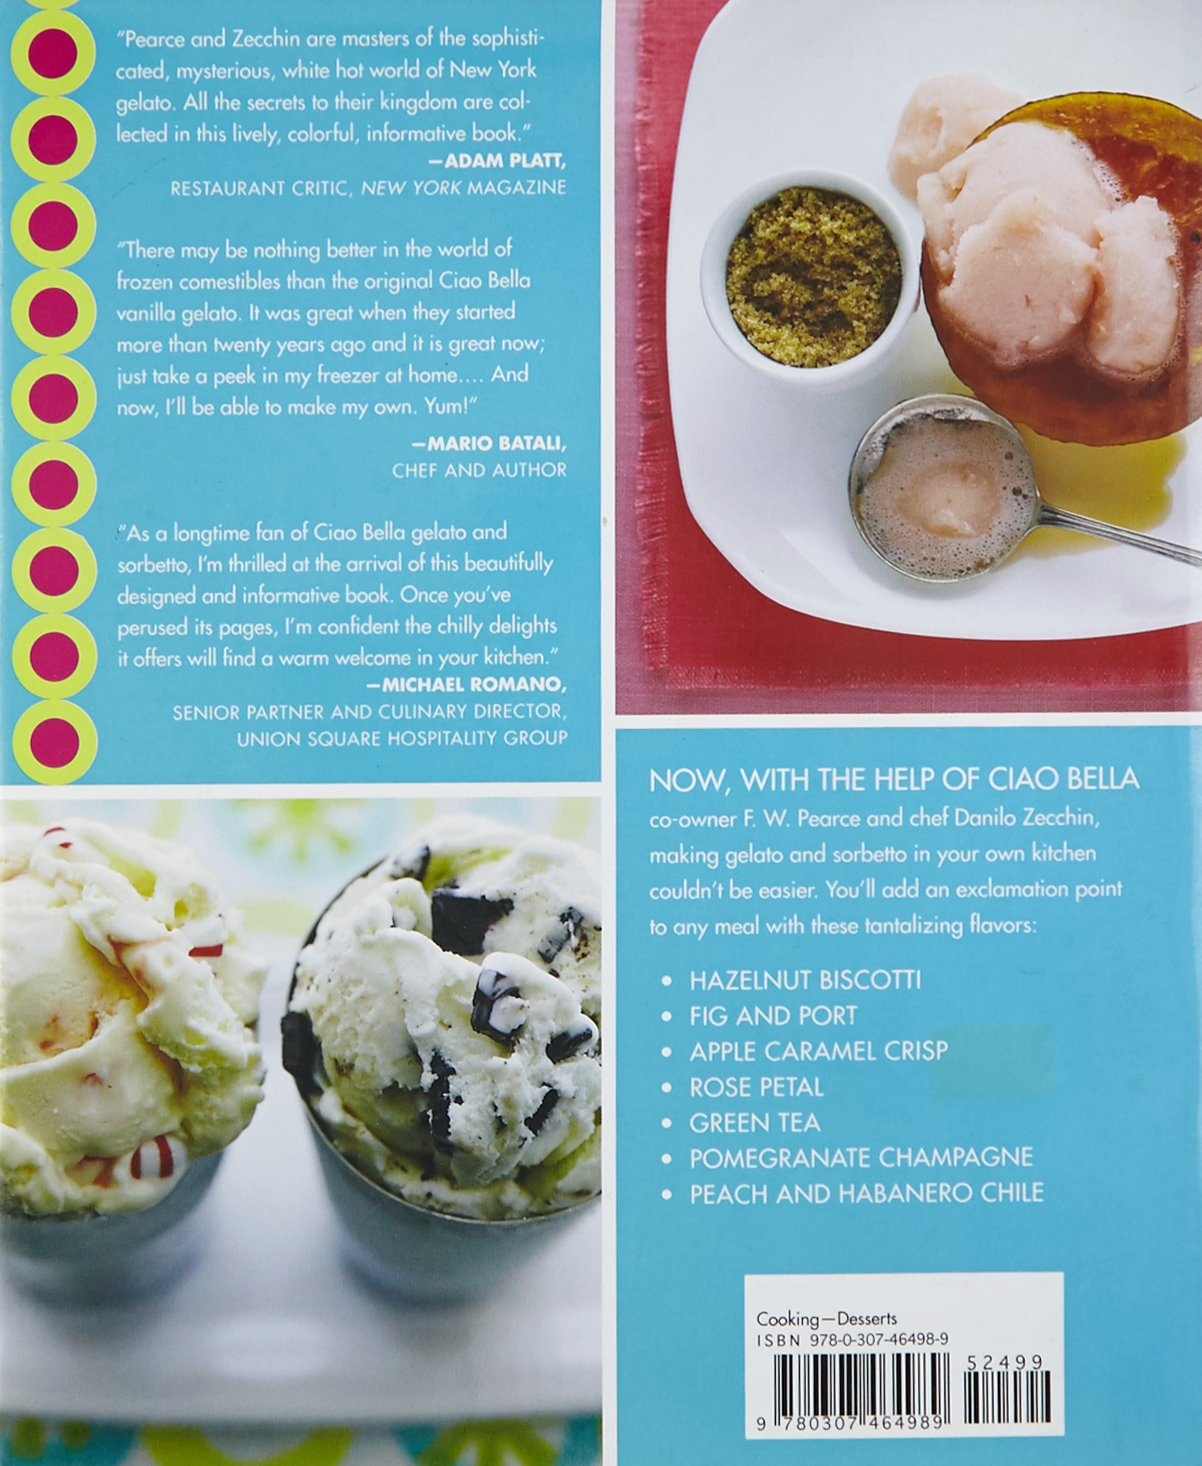 The Ciao Bella Book Of Gelato And Sorbetto: Amazon.es: F. W. Pearce, Danilo Zecchin: Libros en idiomas extranjeros